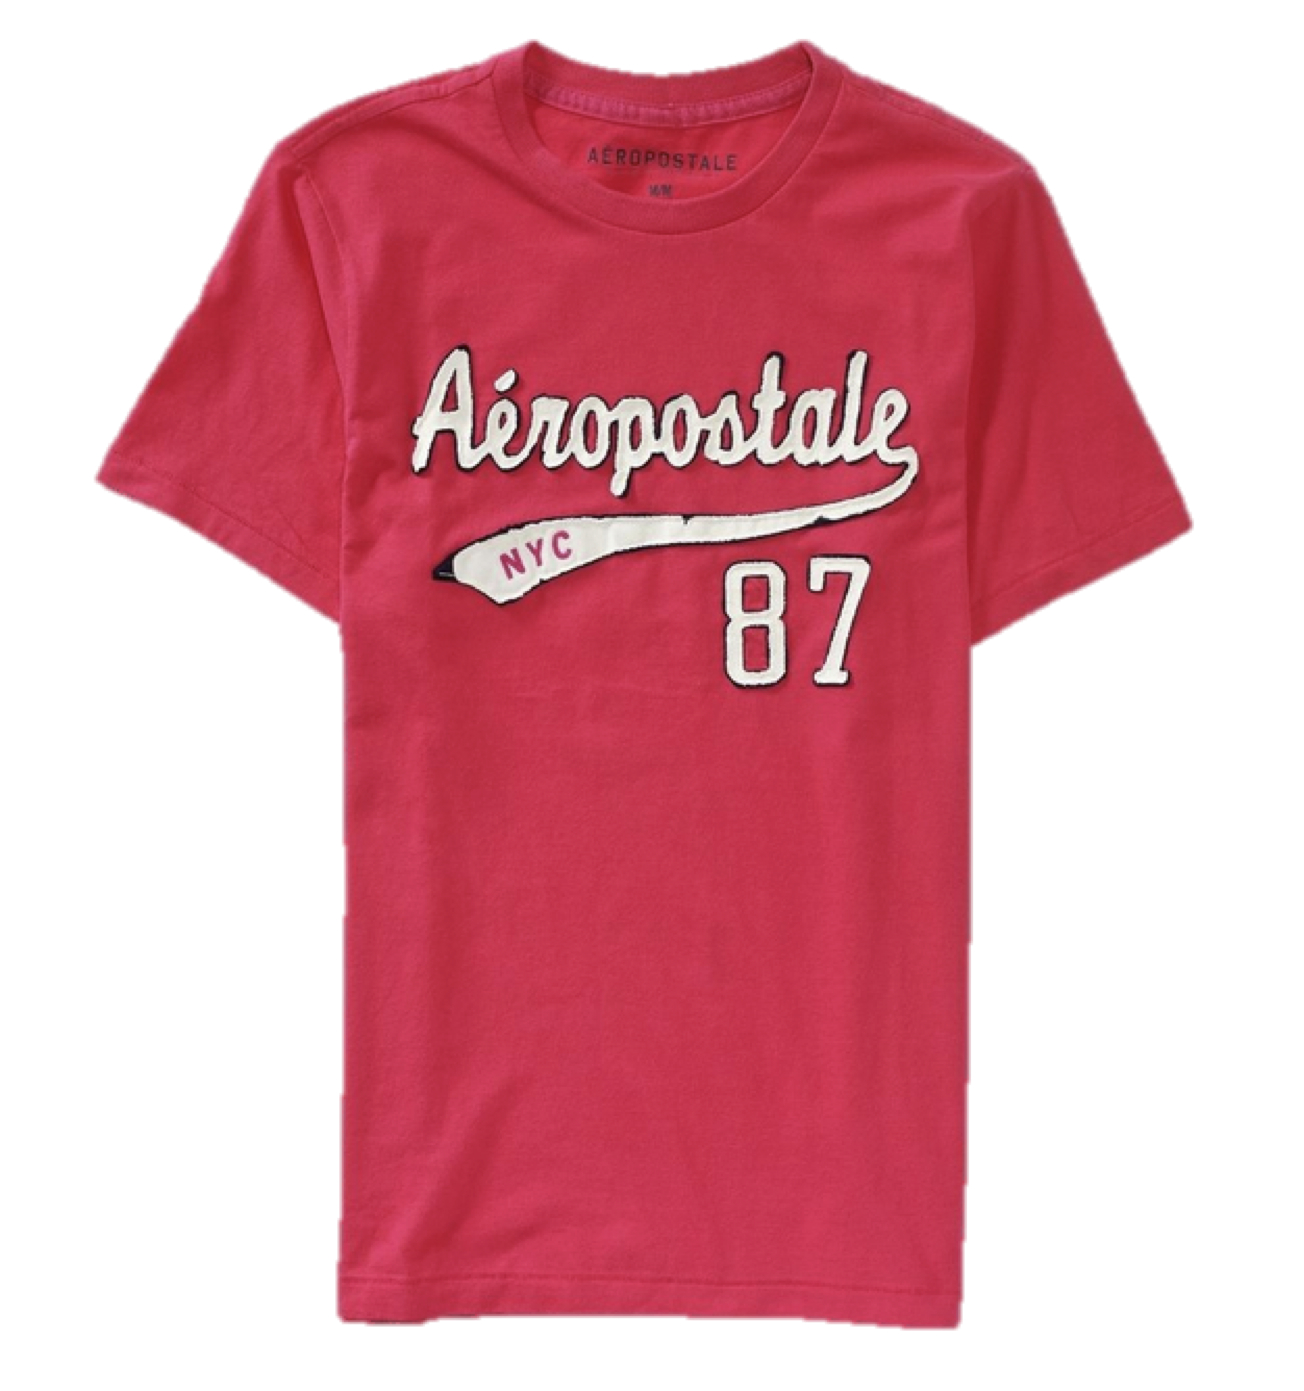 Aeropostale mens t shirt embroidered logo aero nyc tee top